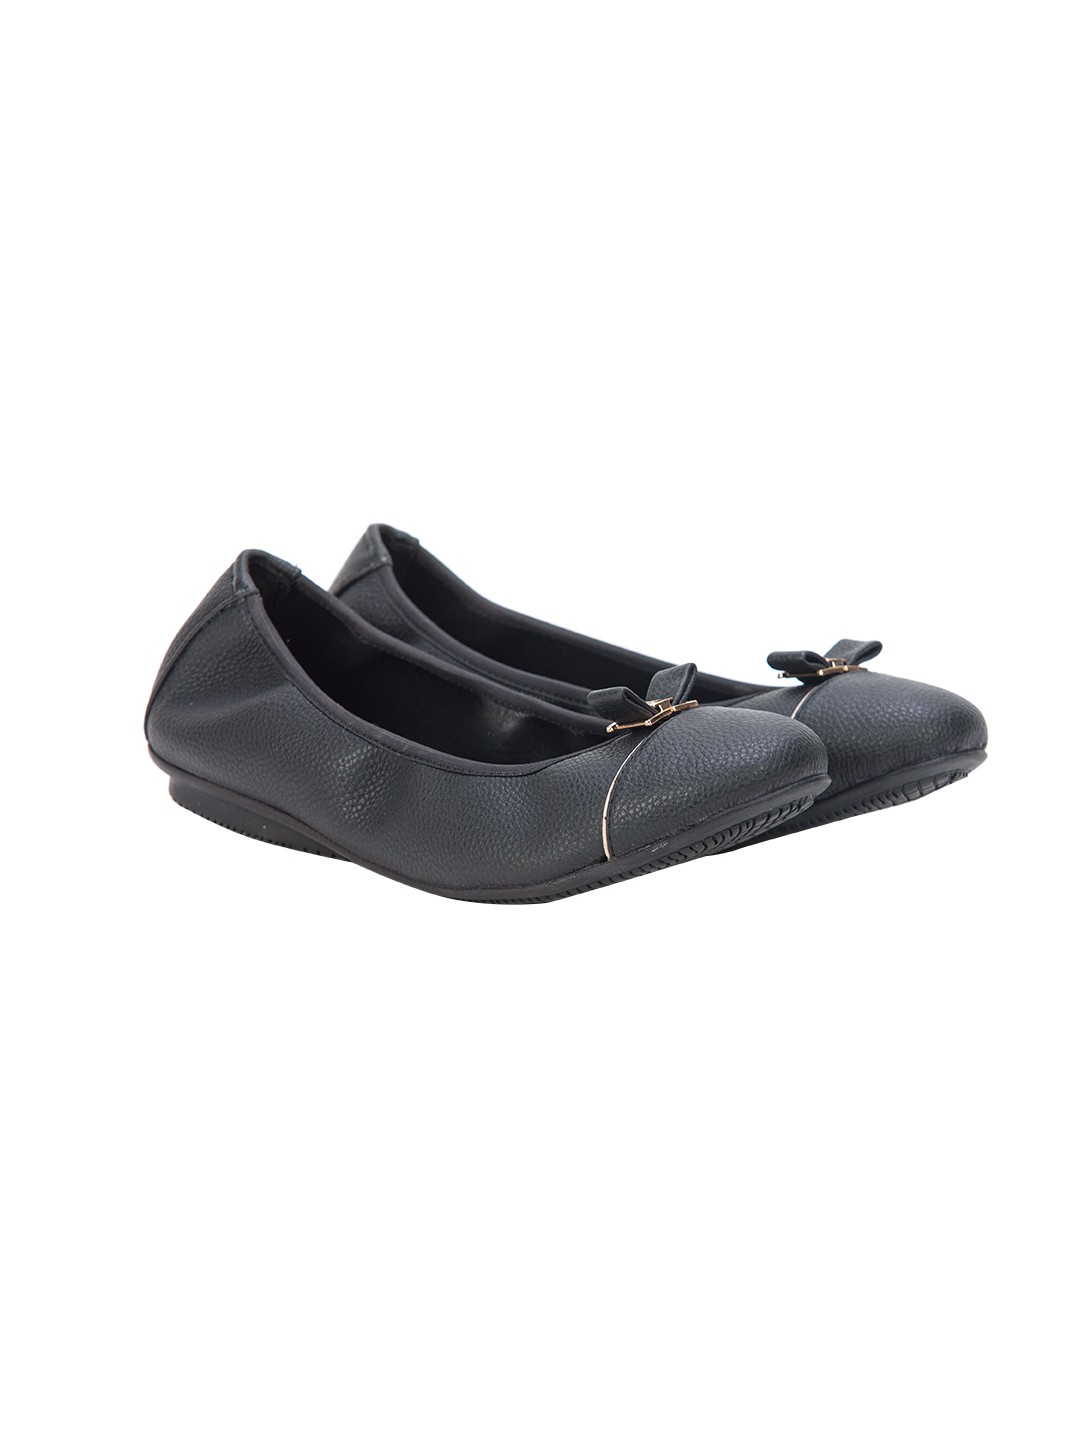 Buy Von Wellx Germany Comfort Poise Casual Black Shoes Online in Indore